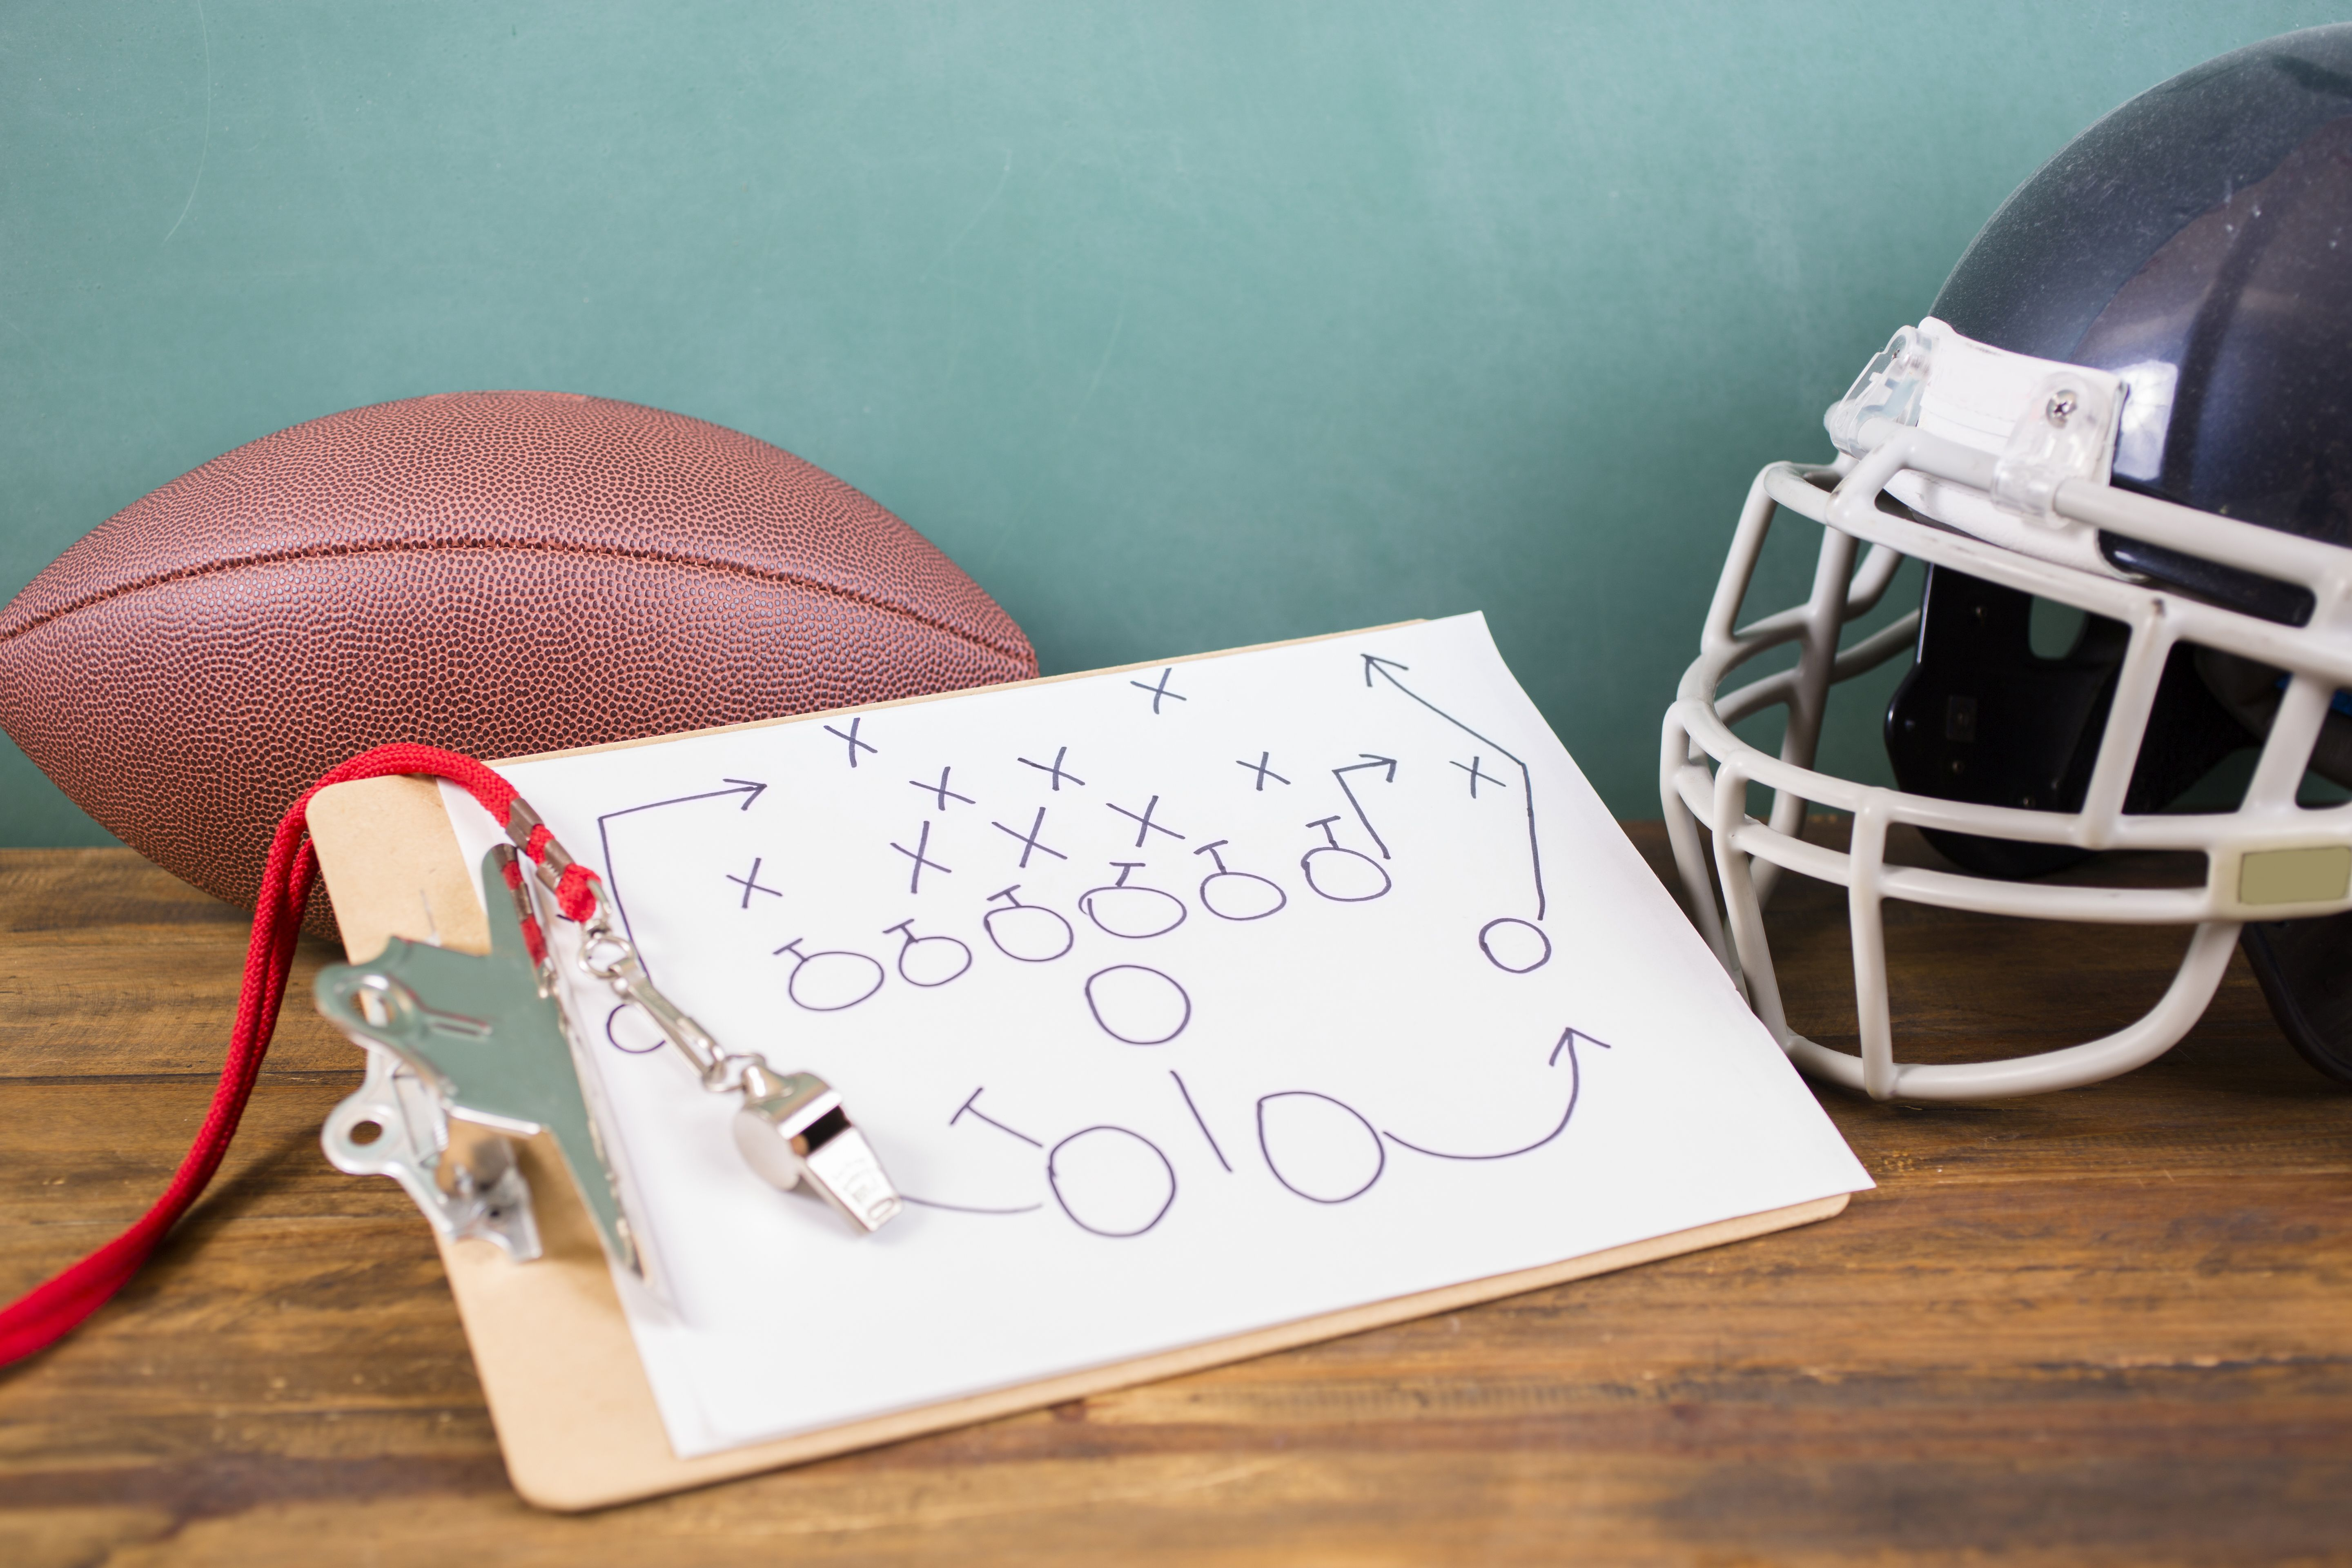 An American football and helmet on a wooden desk with football play diagram drawn on clipboard.  A school coach's silver whistle lies on top.  No people.  Education, sports, teamwork themes.